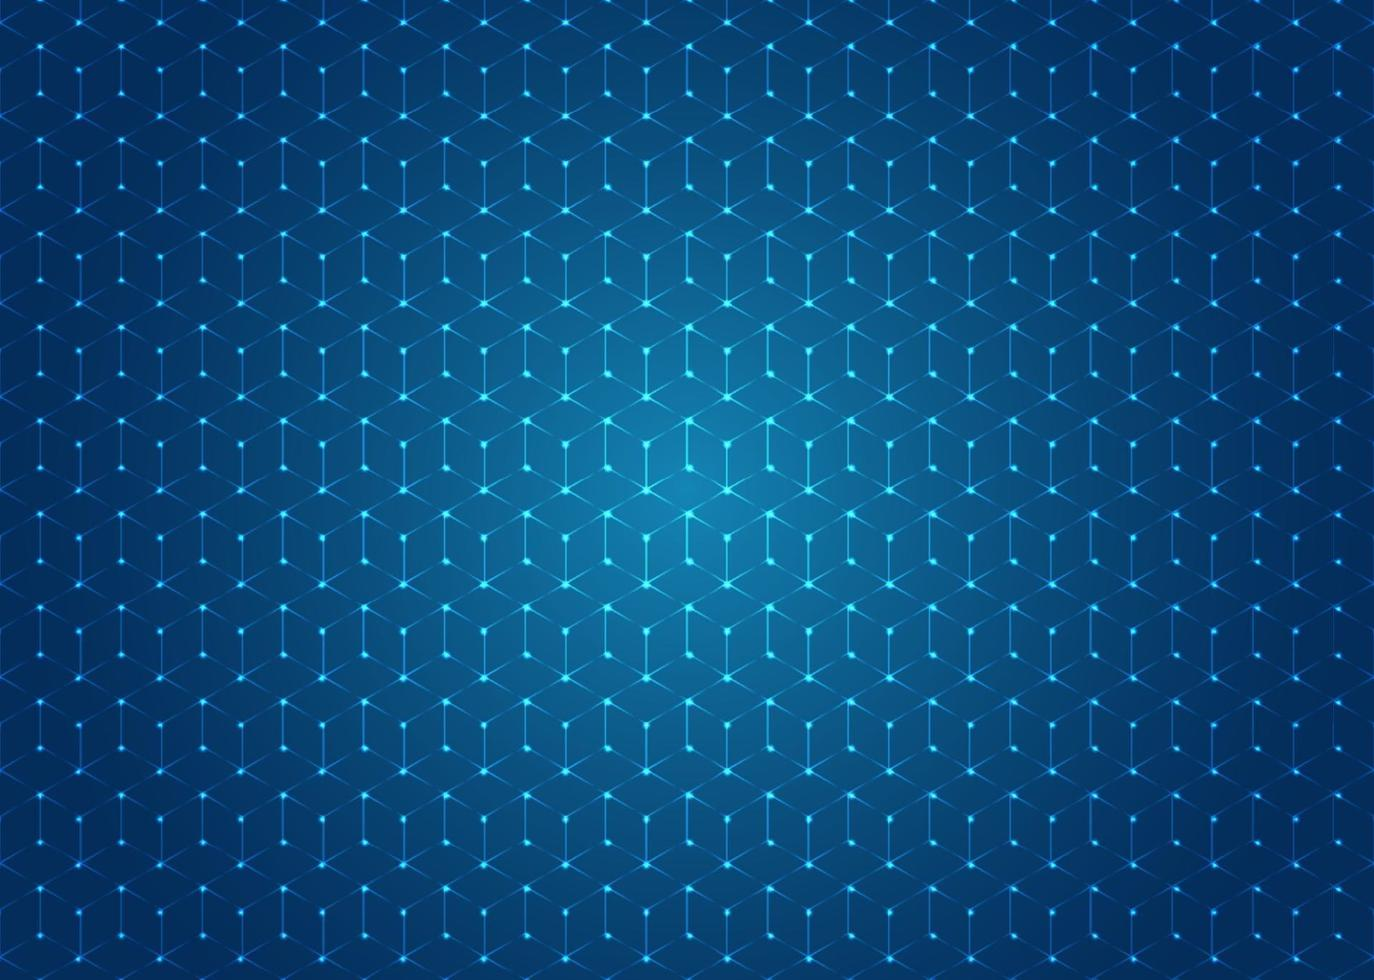 Abstract geometric hexagons shapes seamless pattern with illuminated dot on blue background. vector